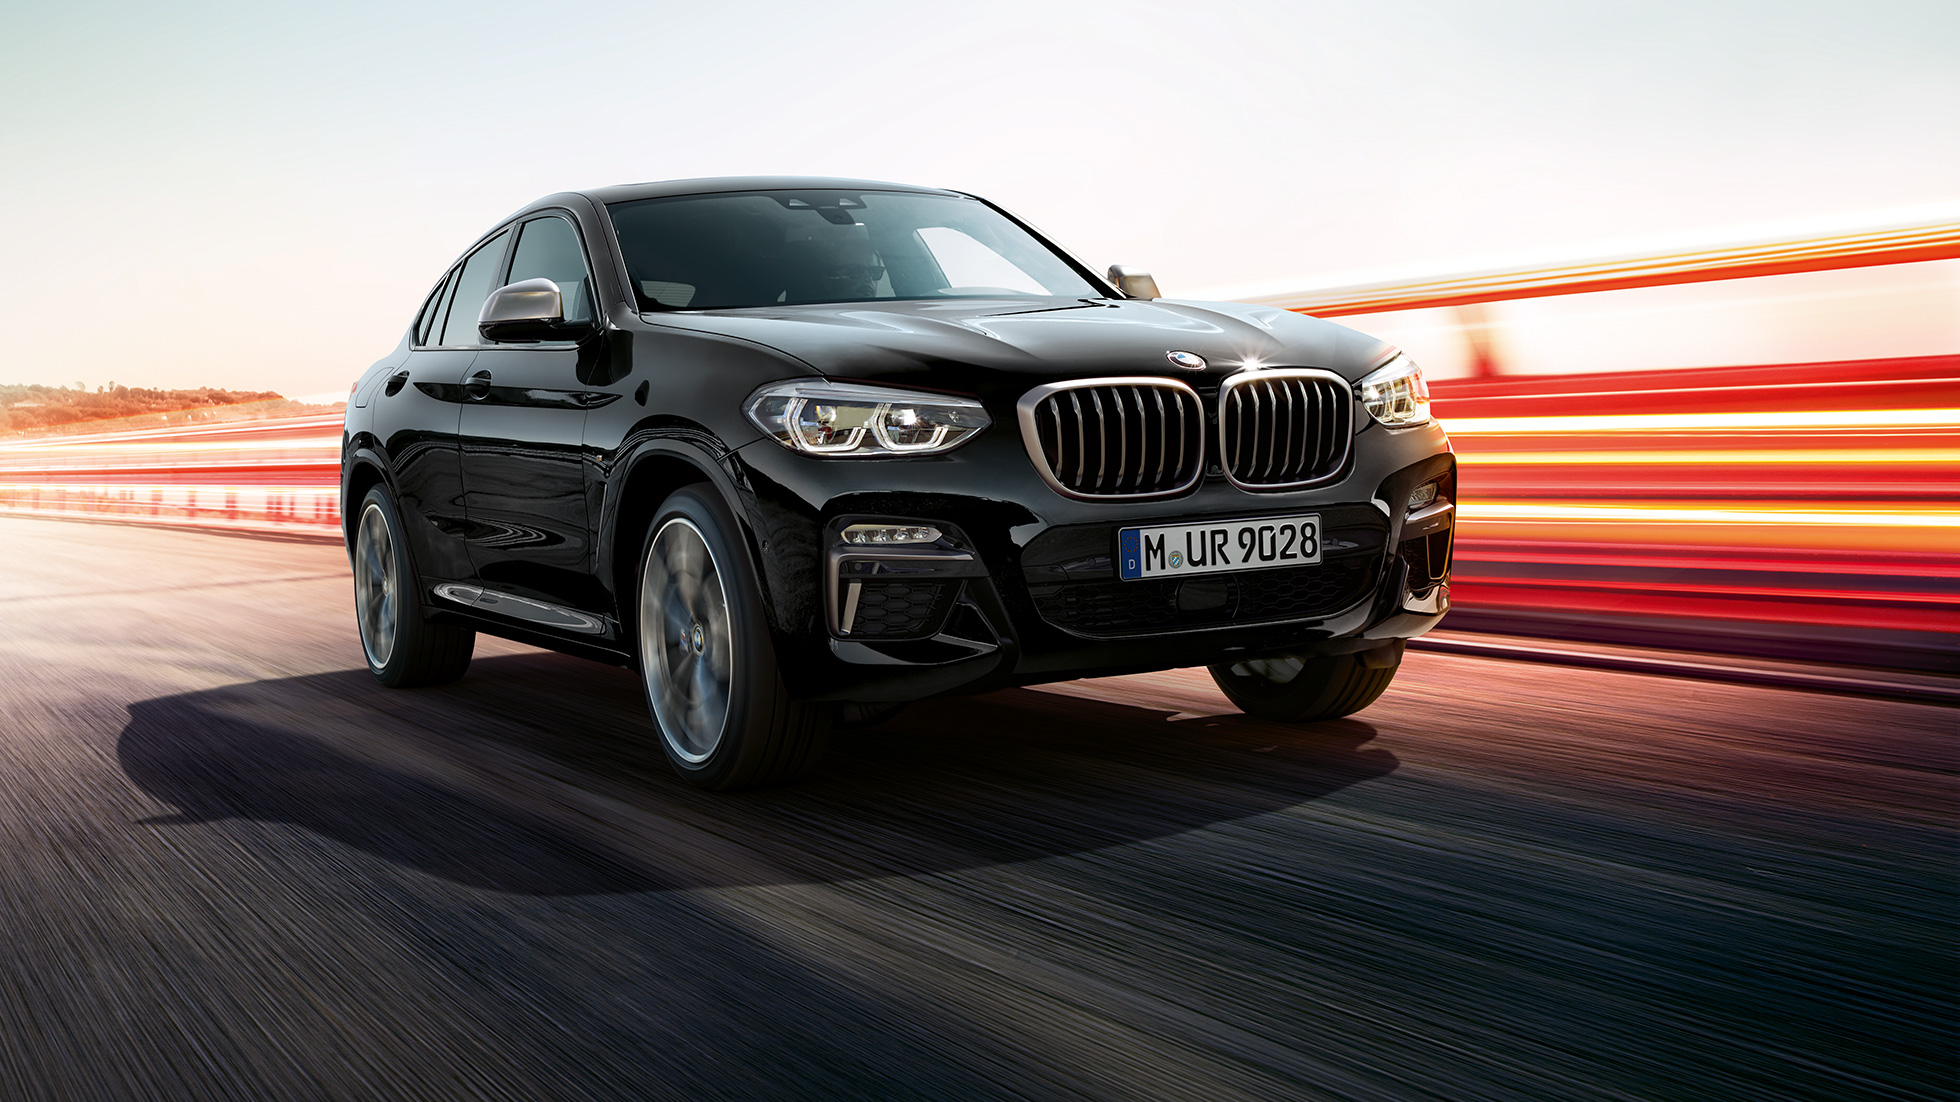 BMW X4 M40i in Black Sapphire metallic, exterior, three-quarter front view, left side with light strips.